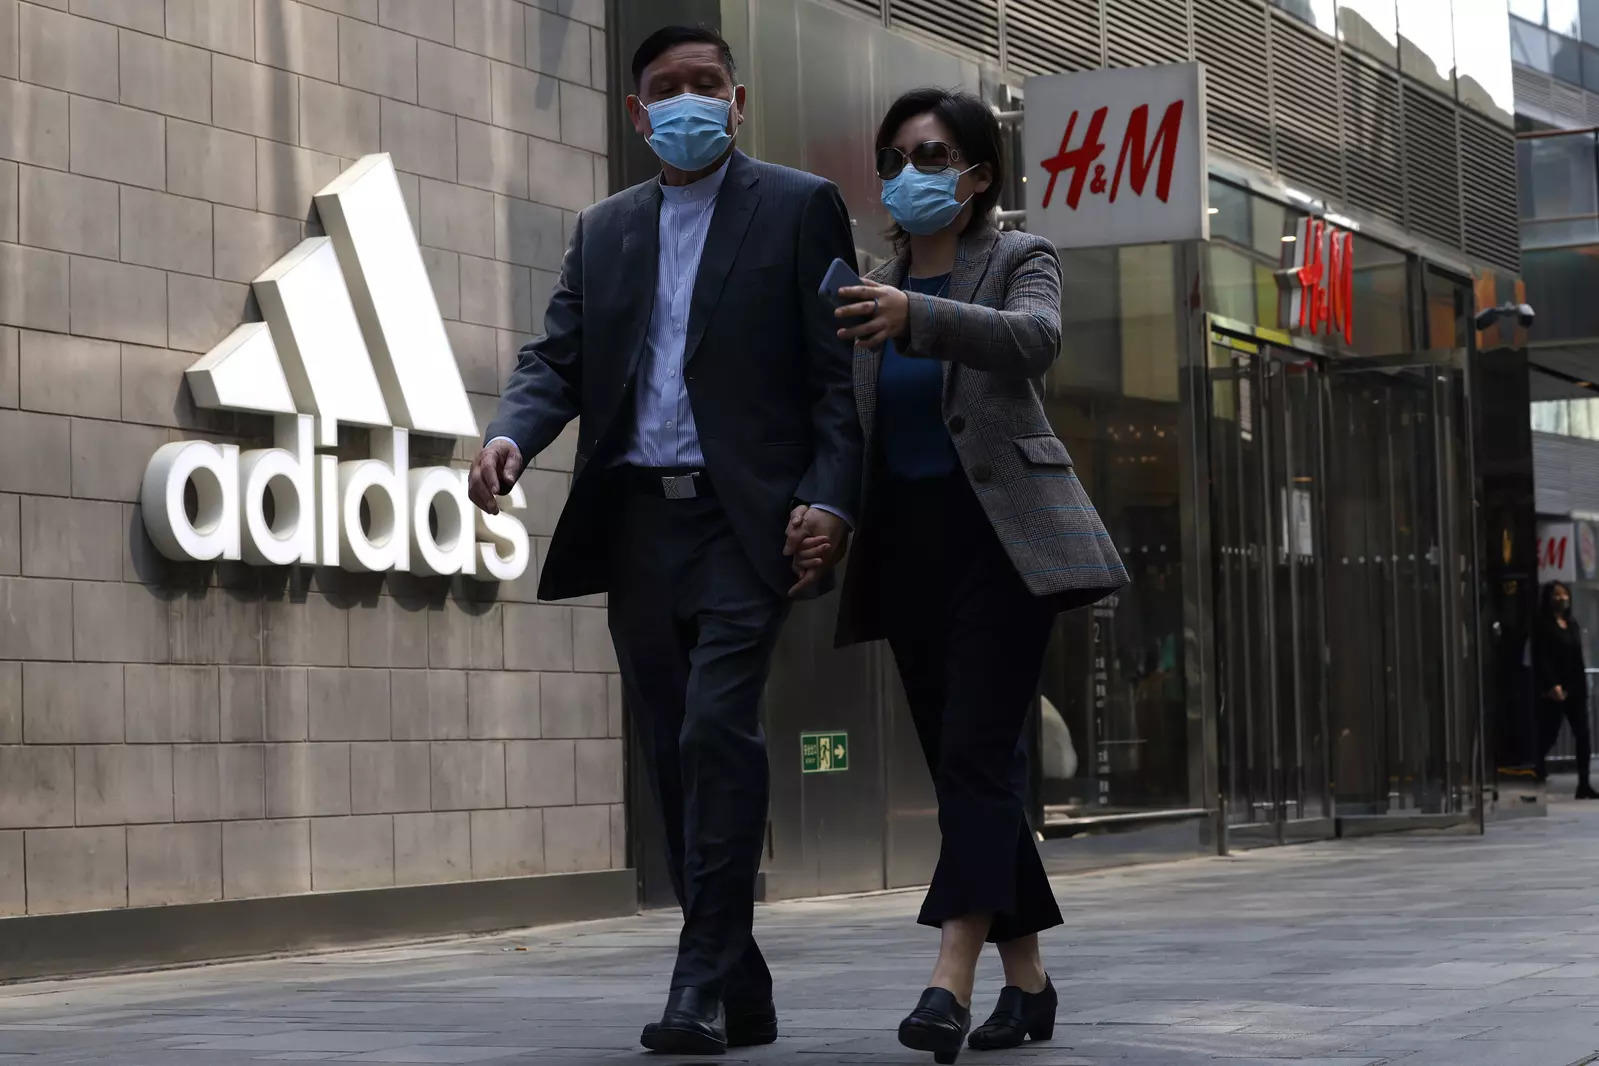 Visitors to a mall shopping area pass by Adidas and H&M stores in Beijing (File photo/AP)